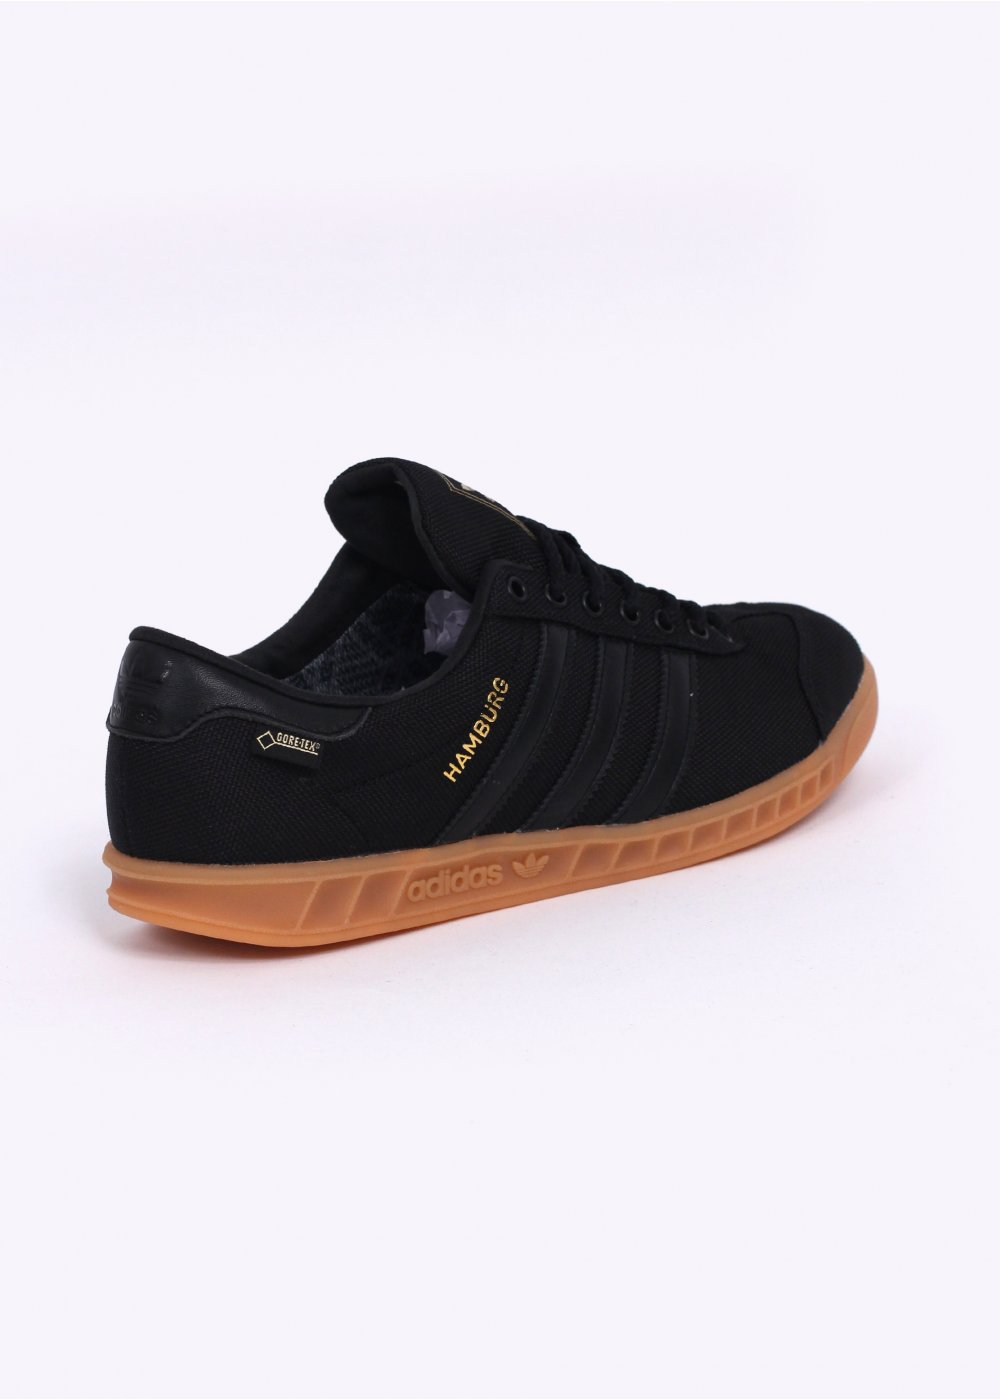 4685b5453699 adidas Hamburg GTX Gore-Tex Trainers - Core Black   Gum